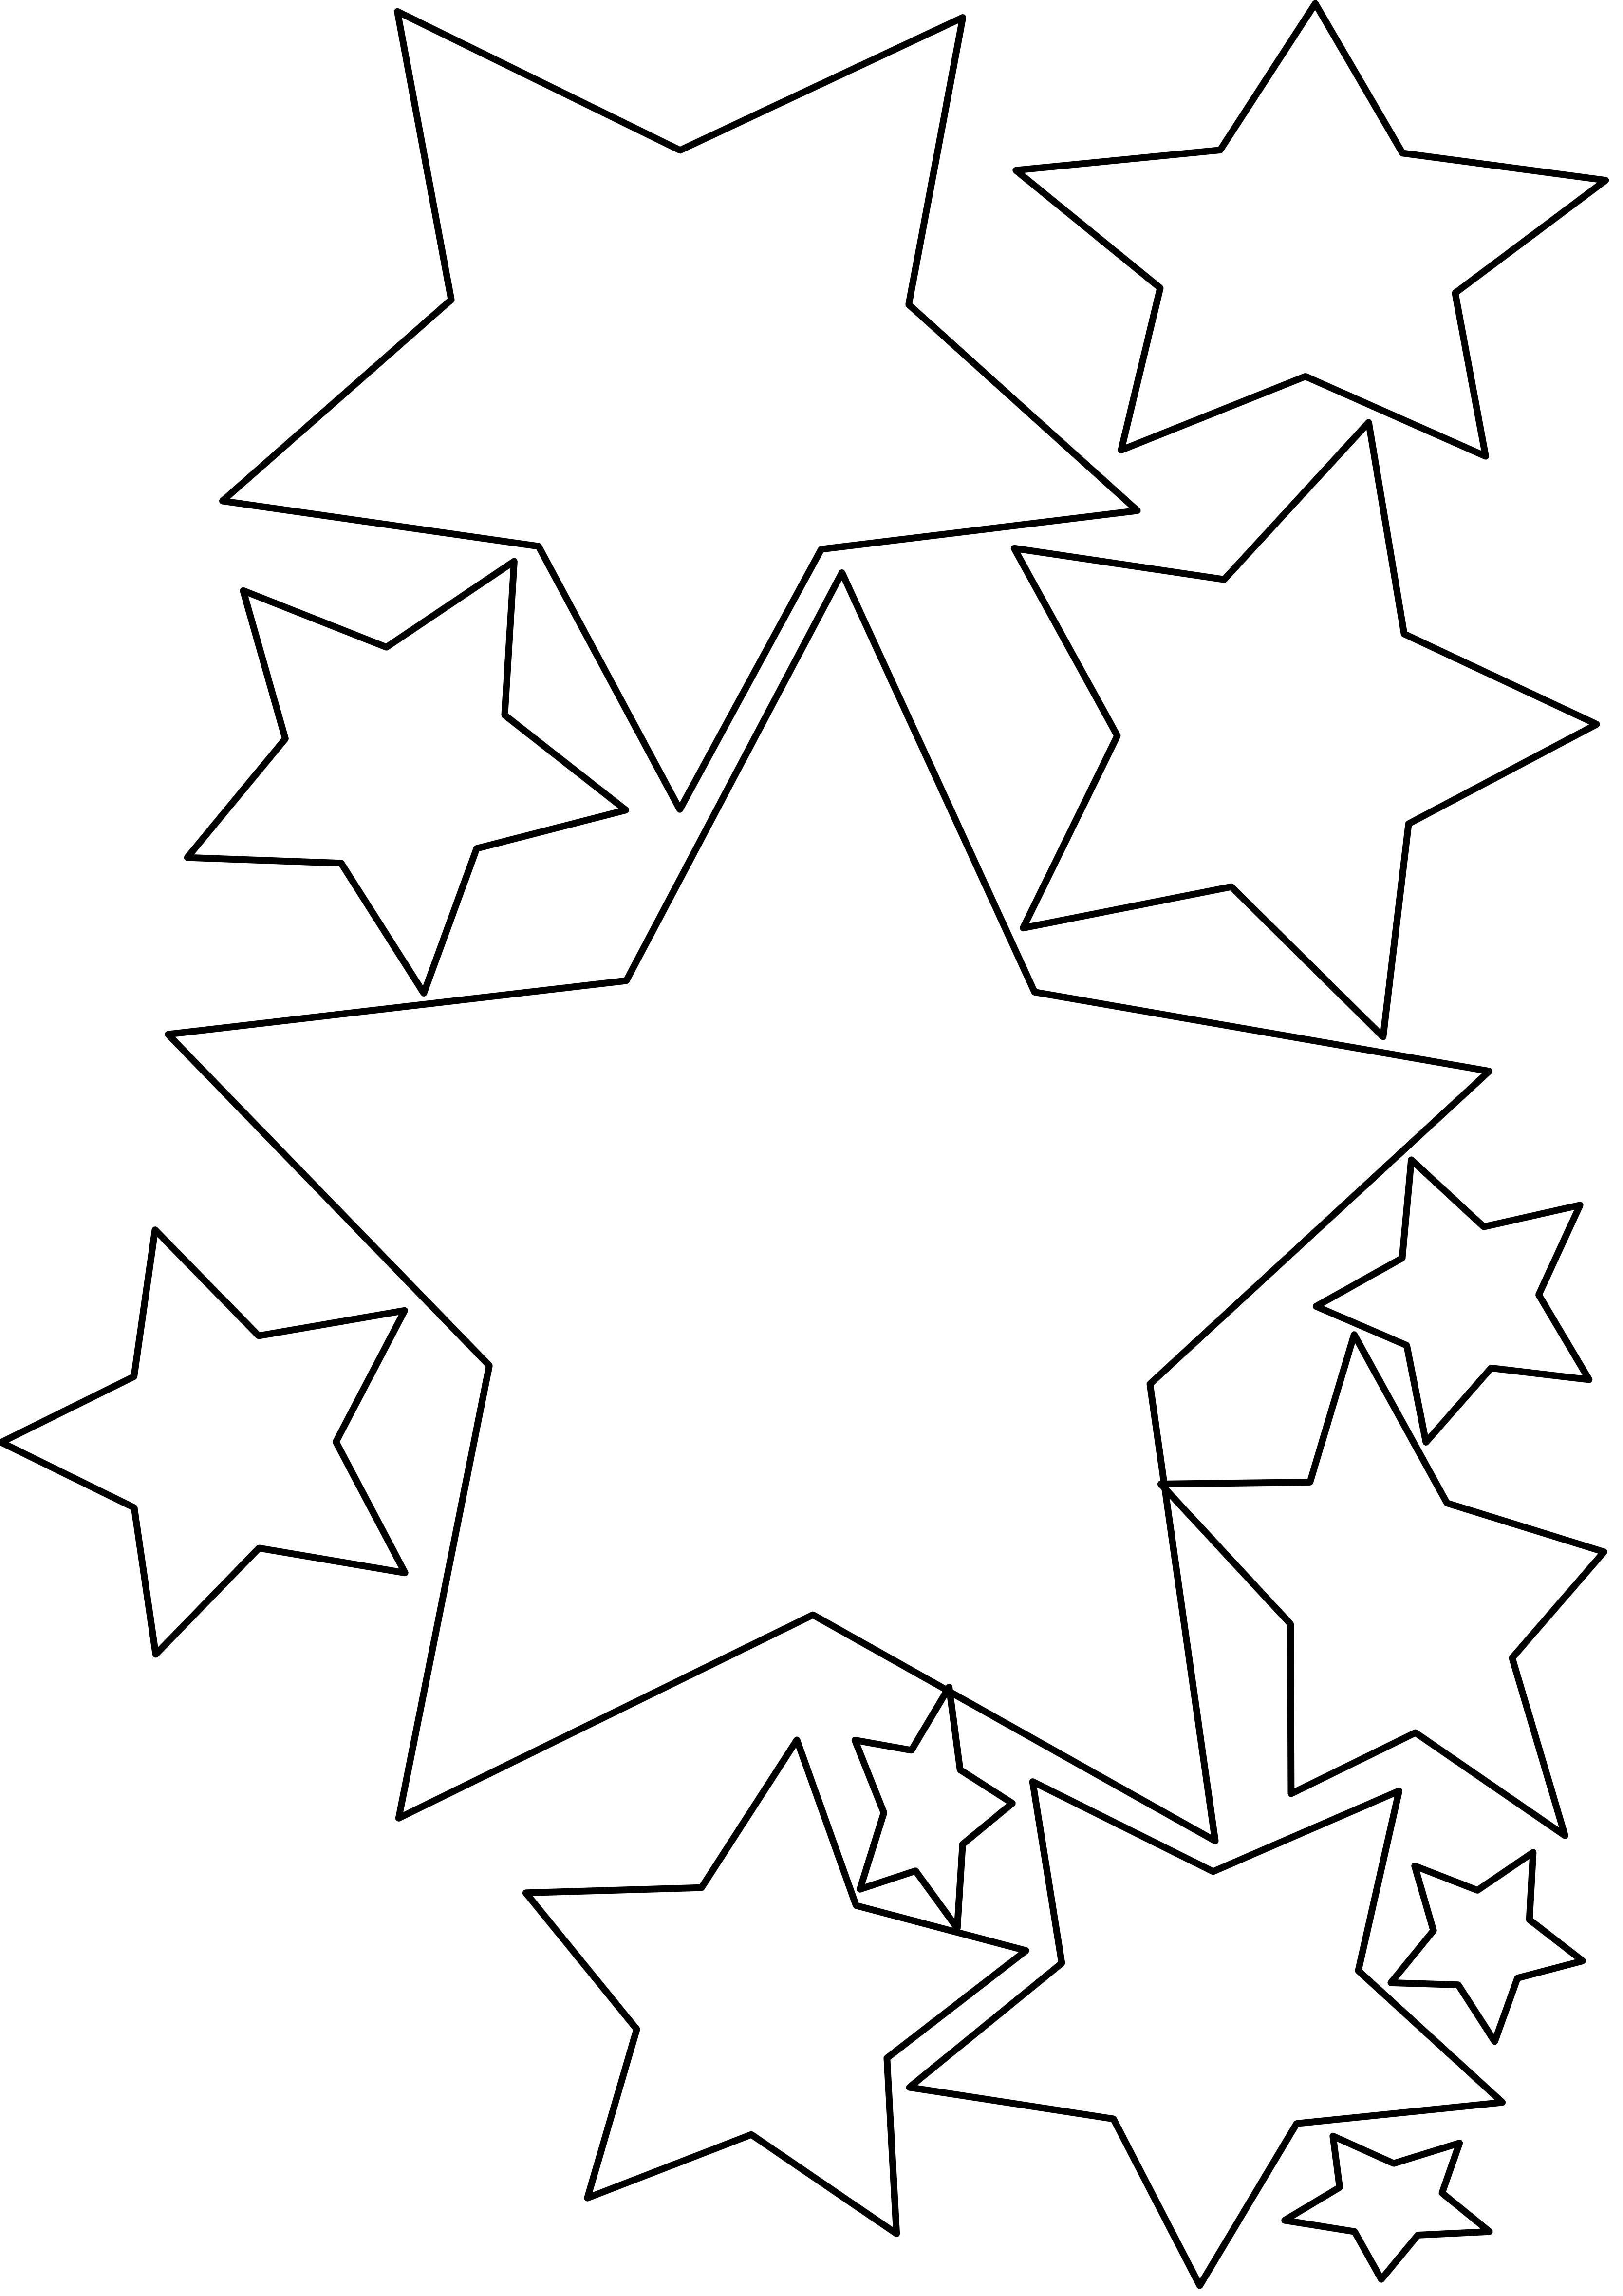 Free Pictures Of White Stars, Download Free Clip Art, Free Clip Art.